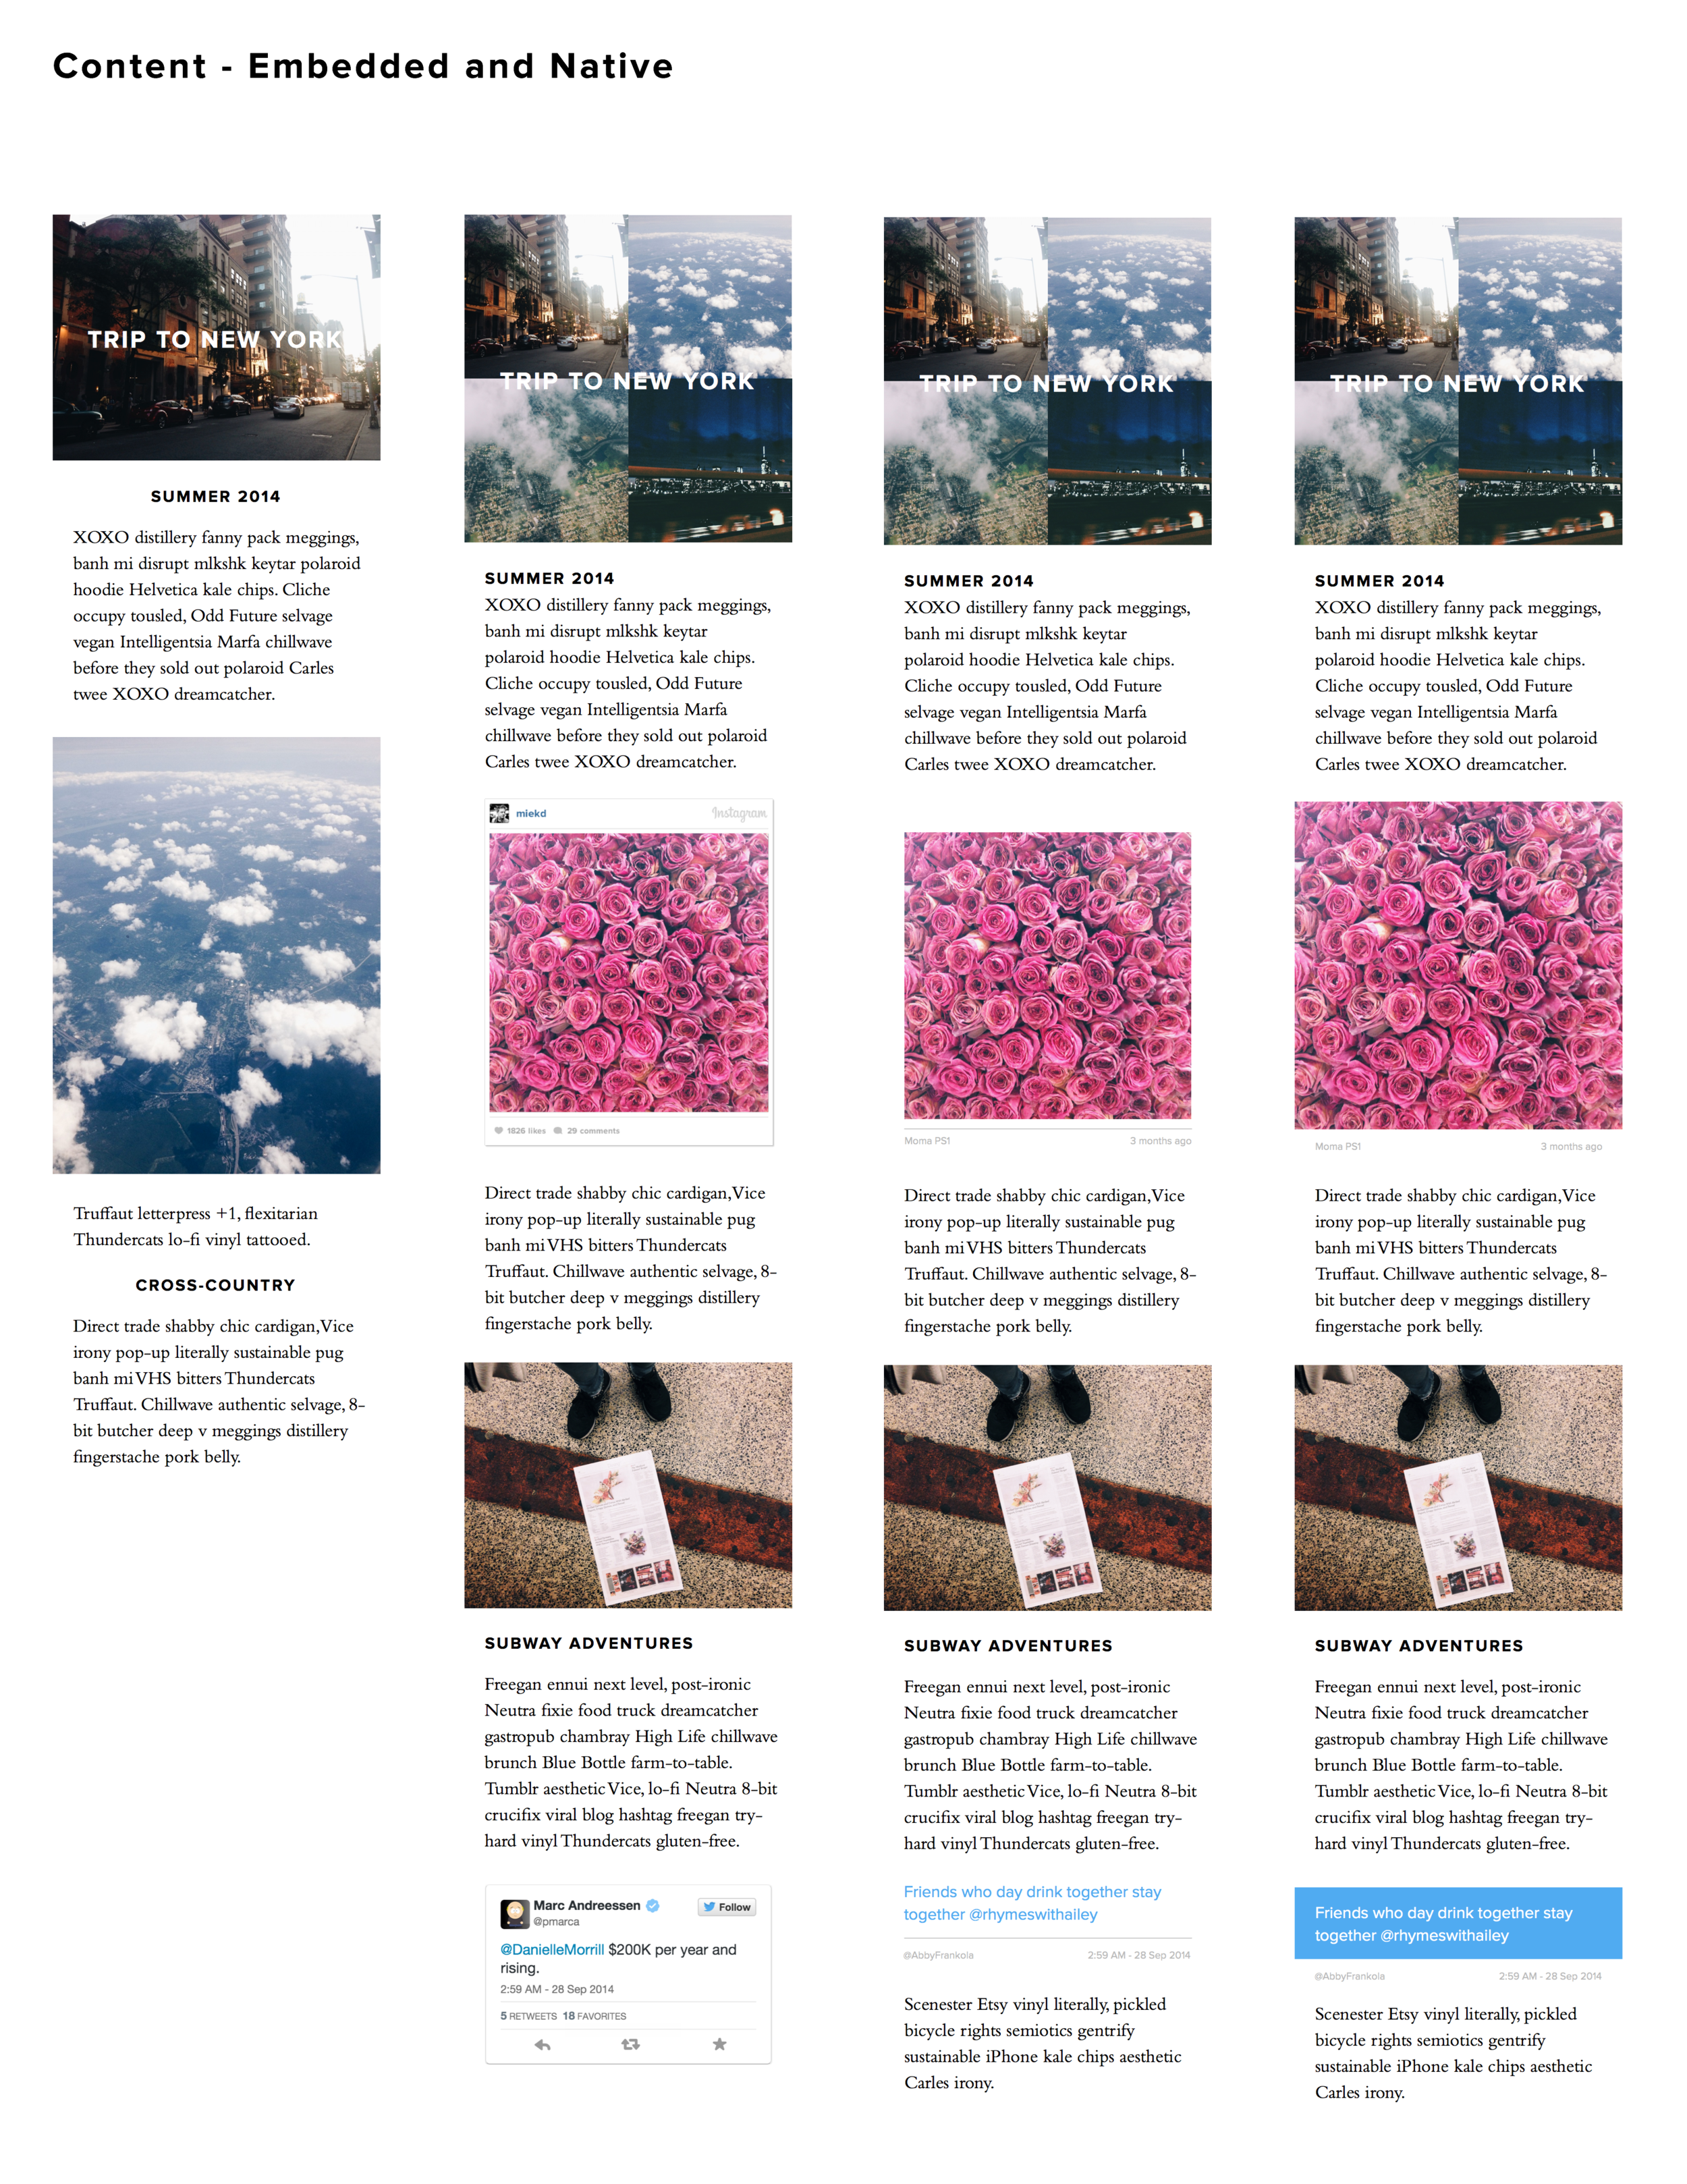 testing out different styles for embedded content - here, we see Instagram and Twitter pulled into a Yesterday story